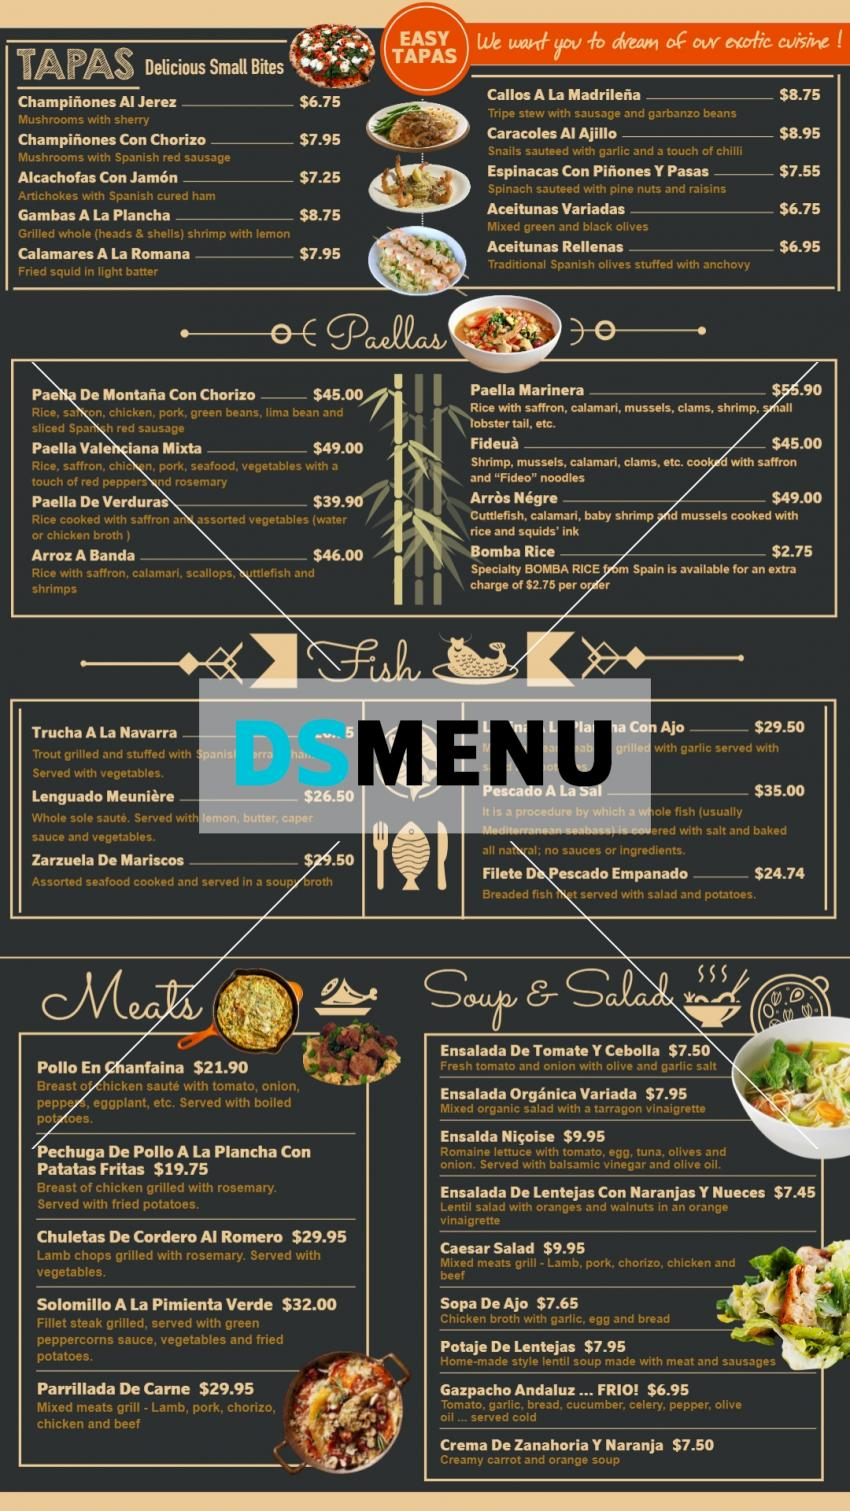 Tapas Spanish vertical Menu for restaurant digital signage